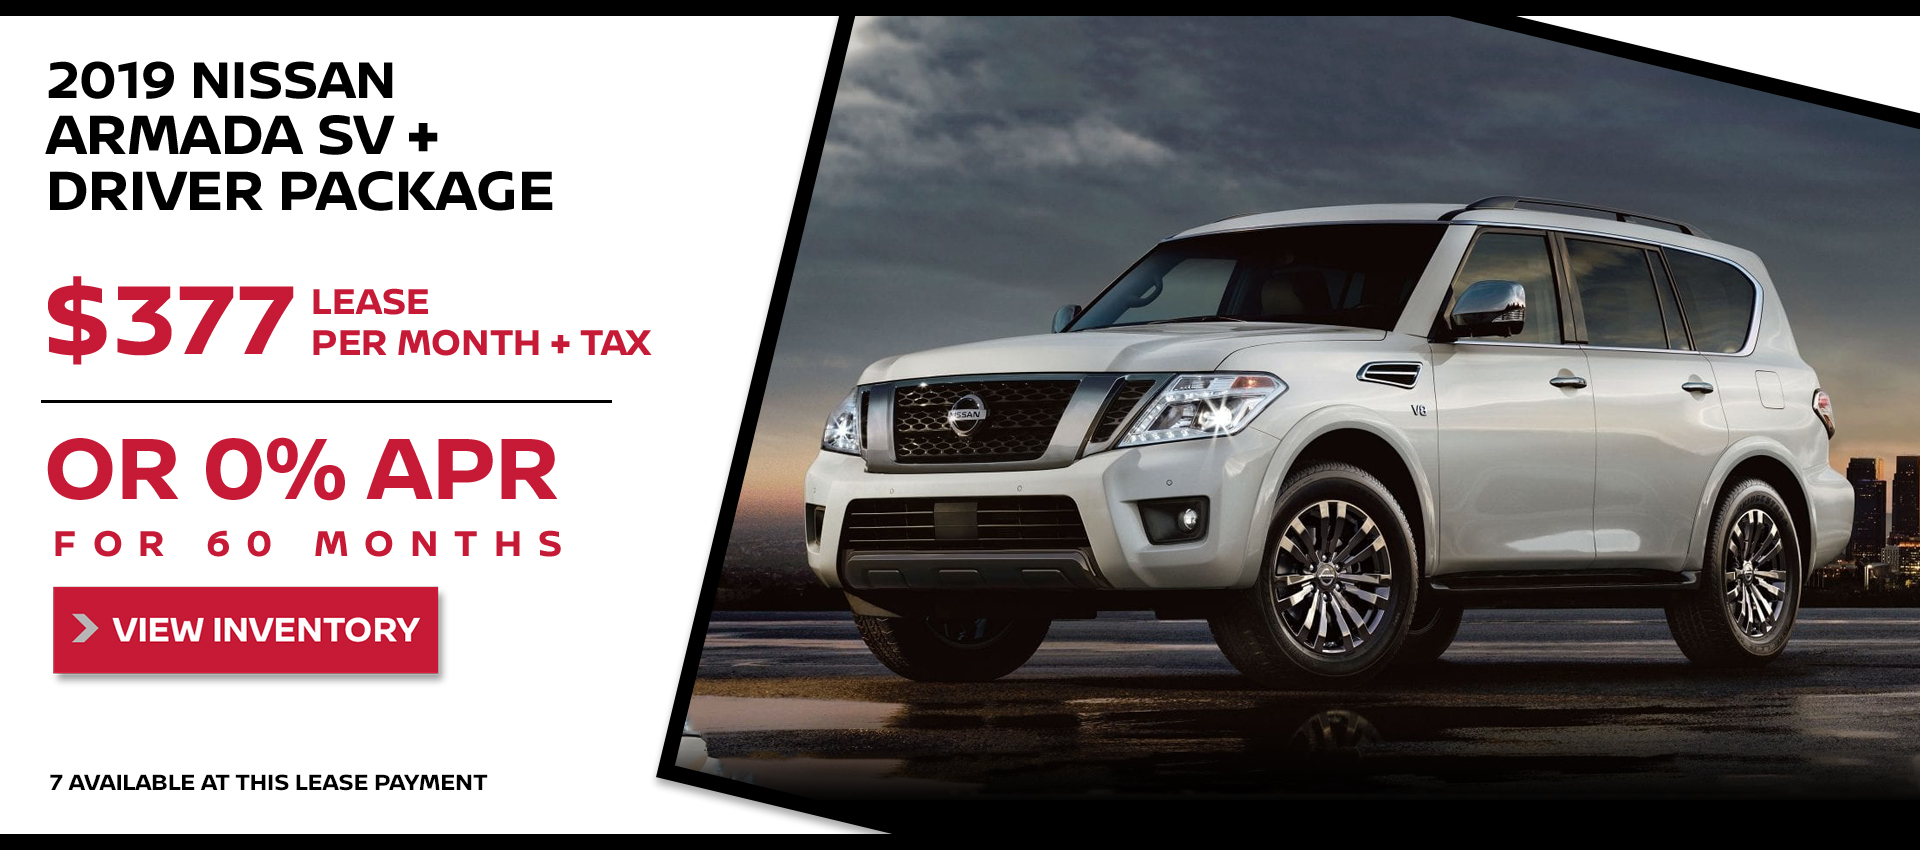 Mossy Nissan - Nissan Armada $377 Lease HP